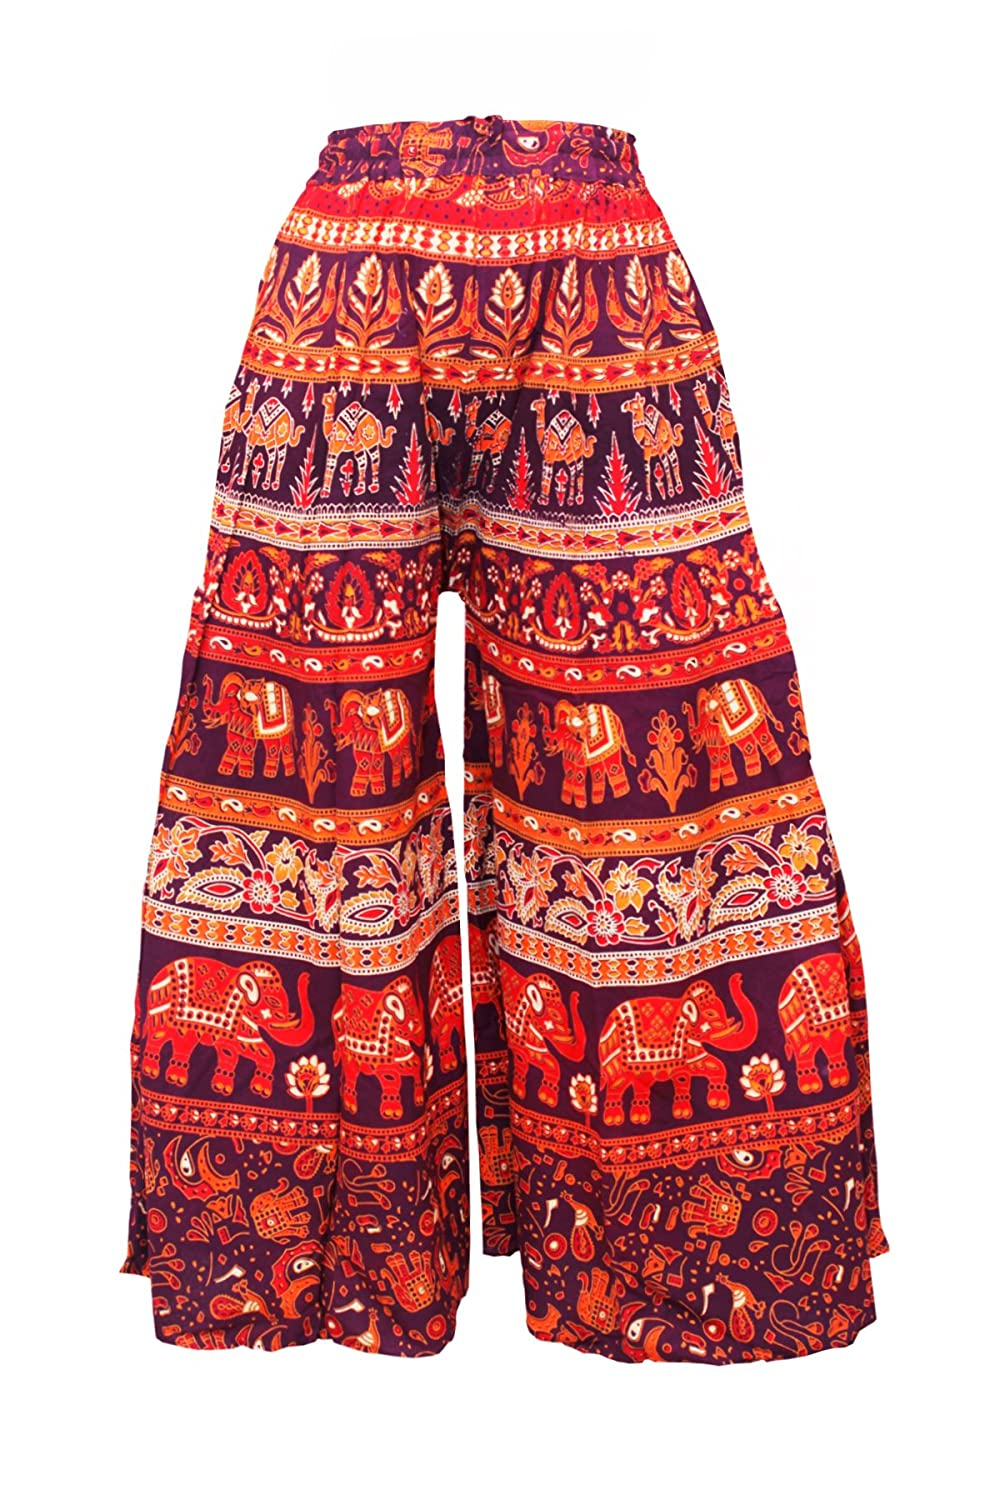 Ayat Cotton Women's Smocked Waist Harem Hippie Trousers Boho Palazzo Bohemian Pants Good for Party Holiday Yoga